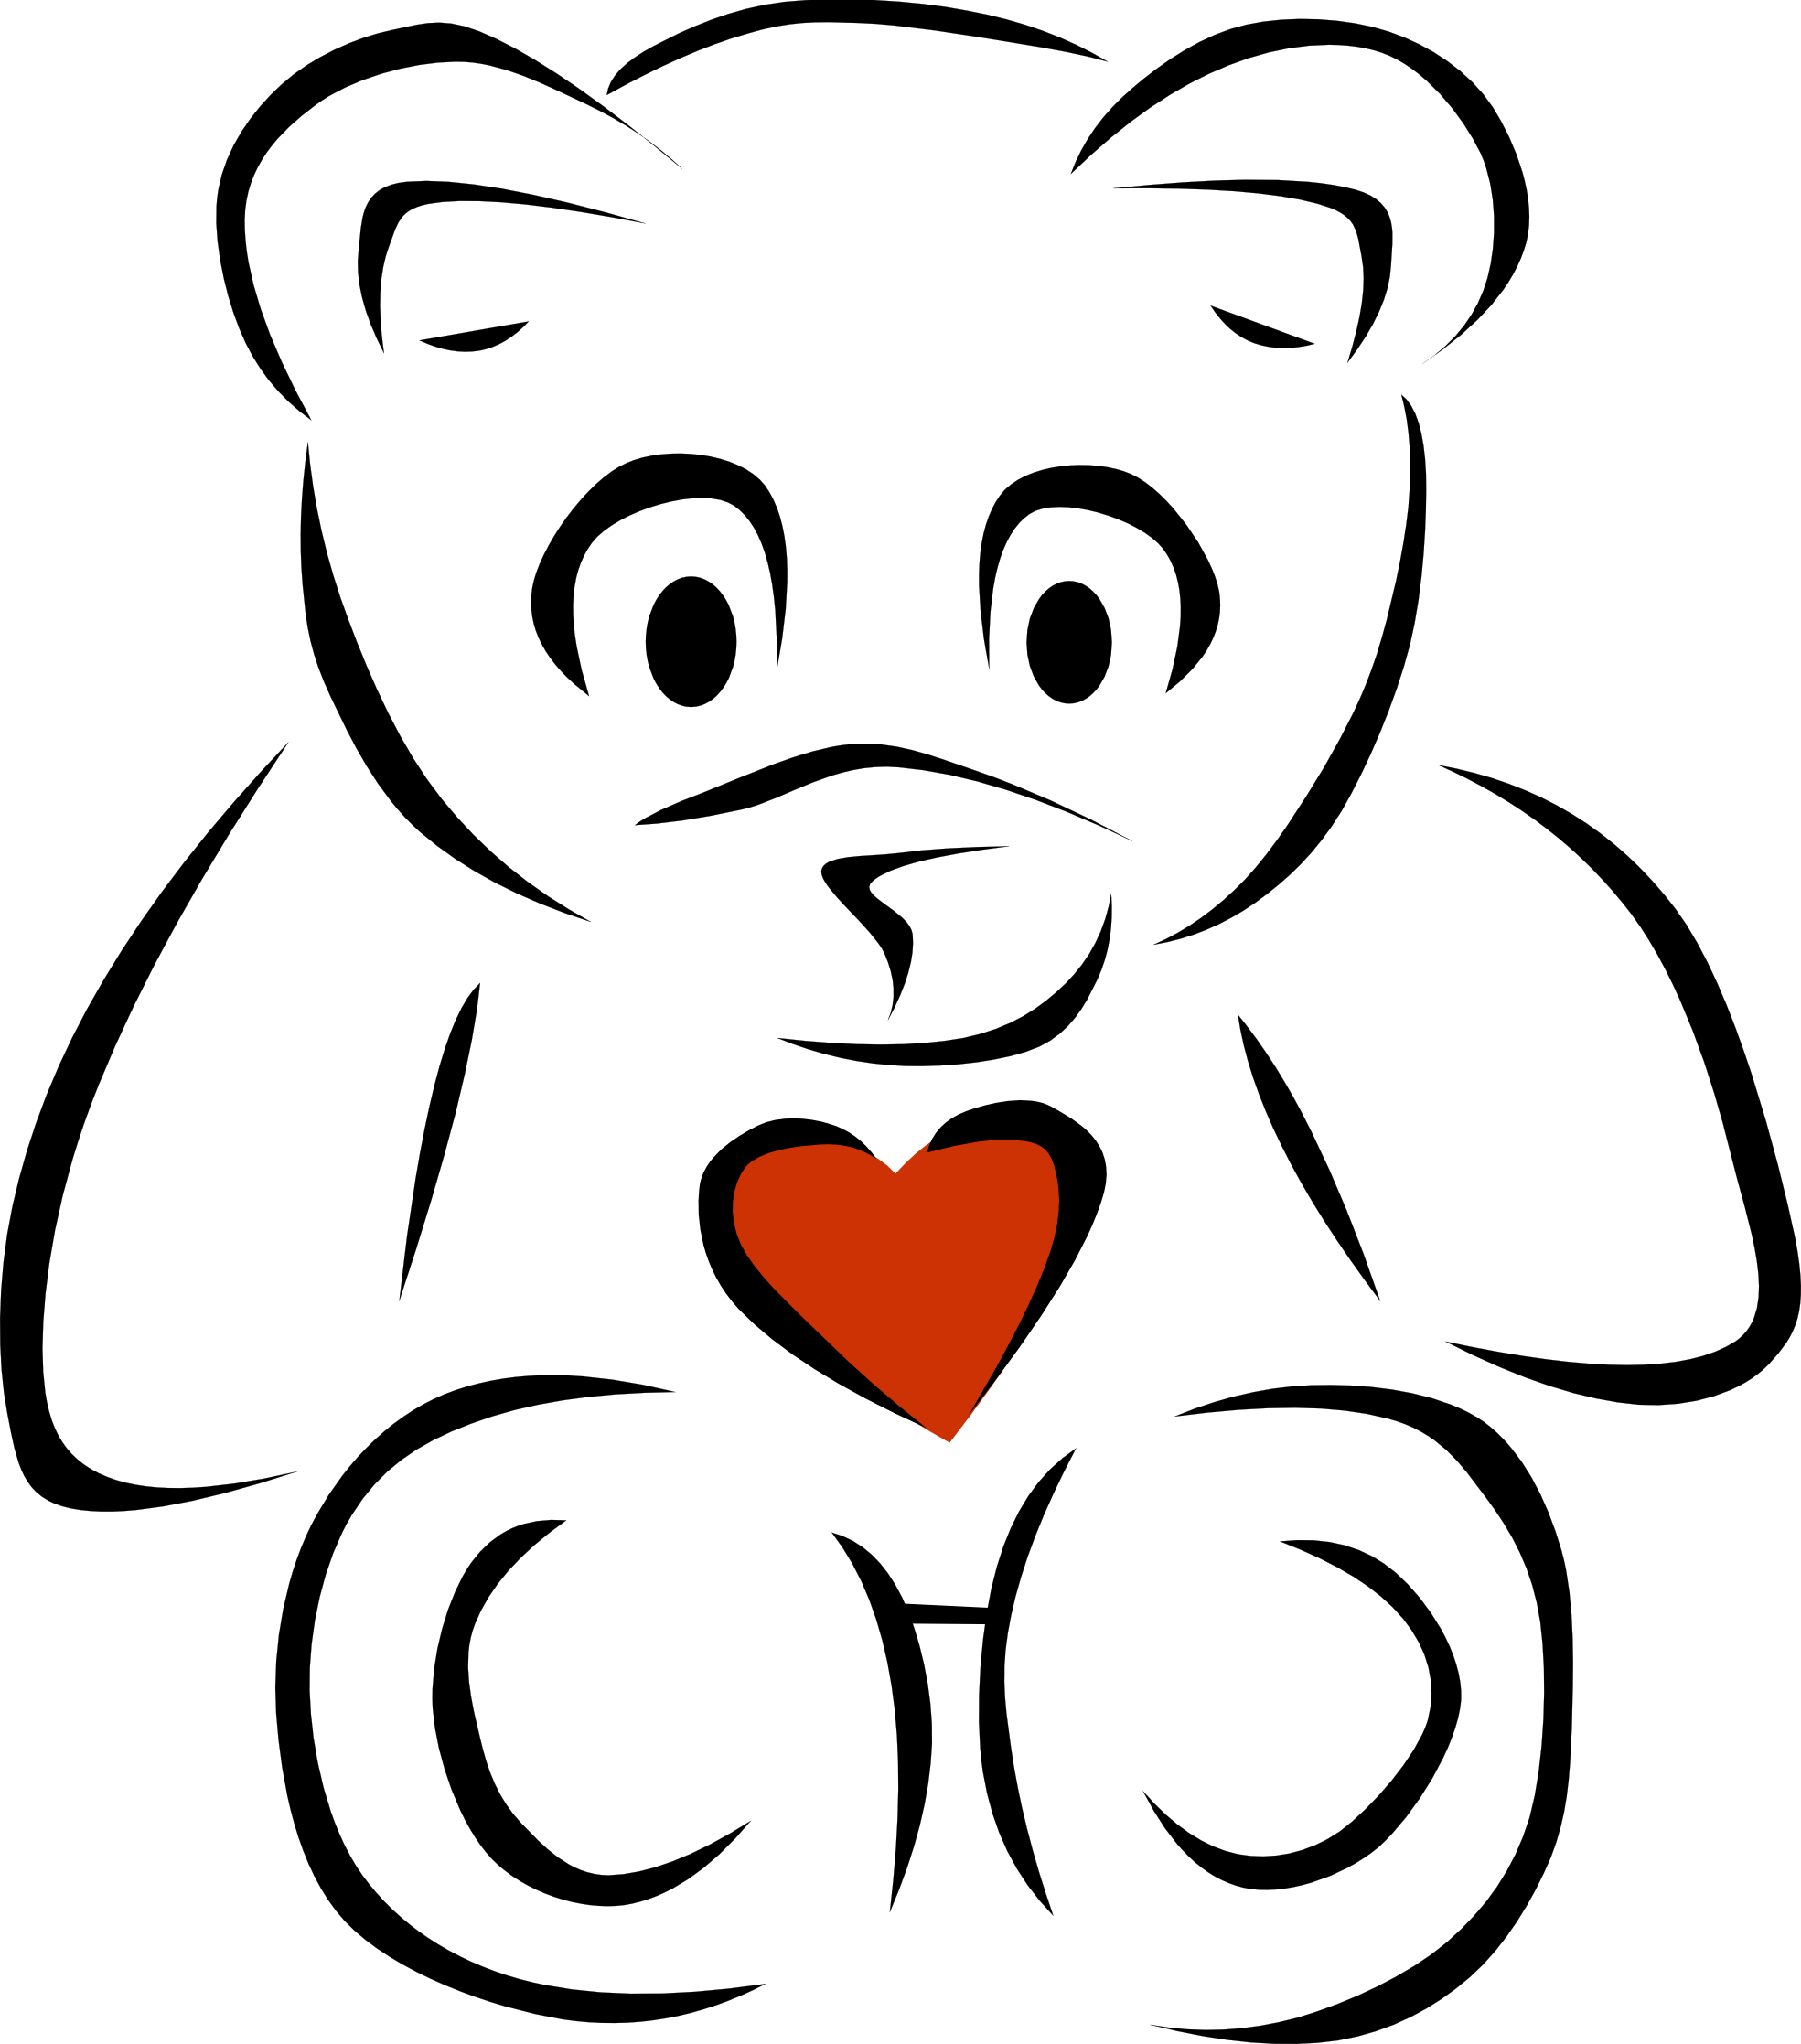 Clipart Heart Black And White Clipart Panda